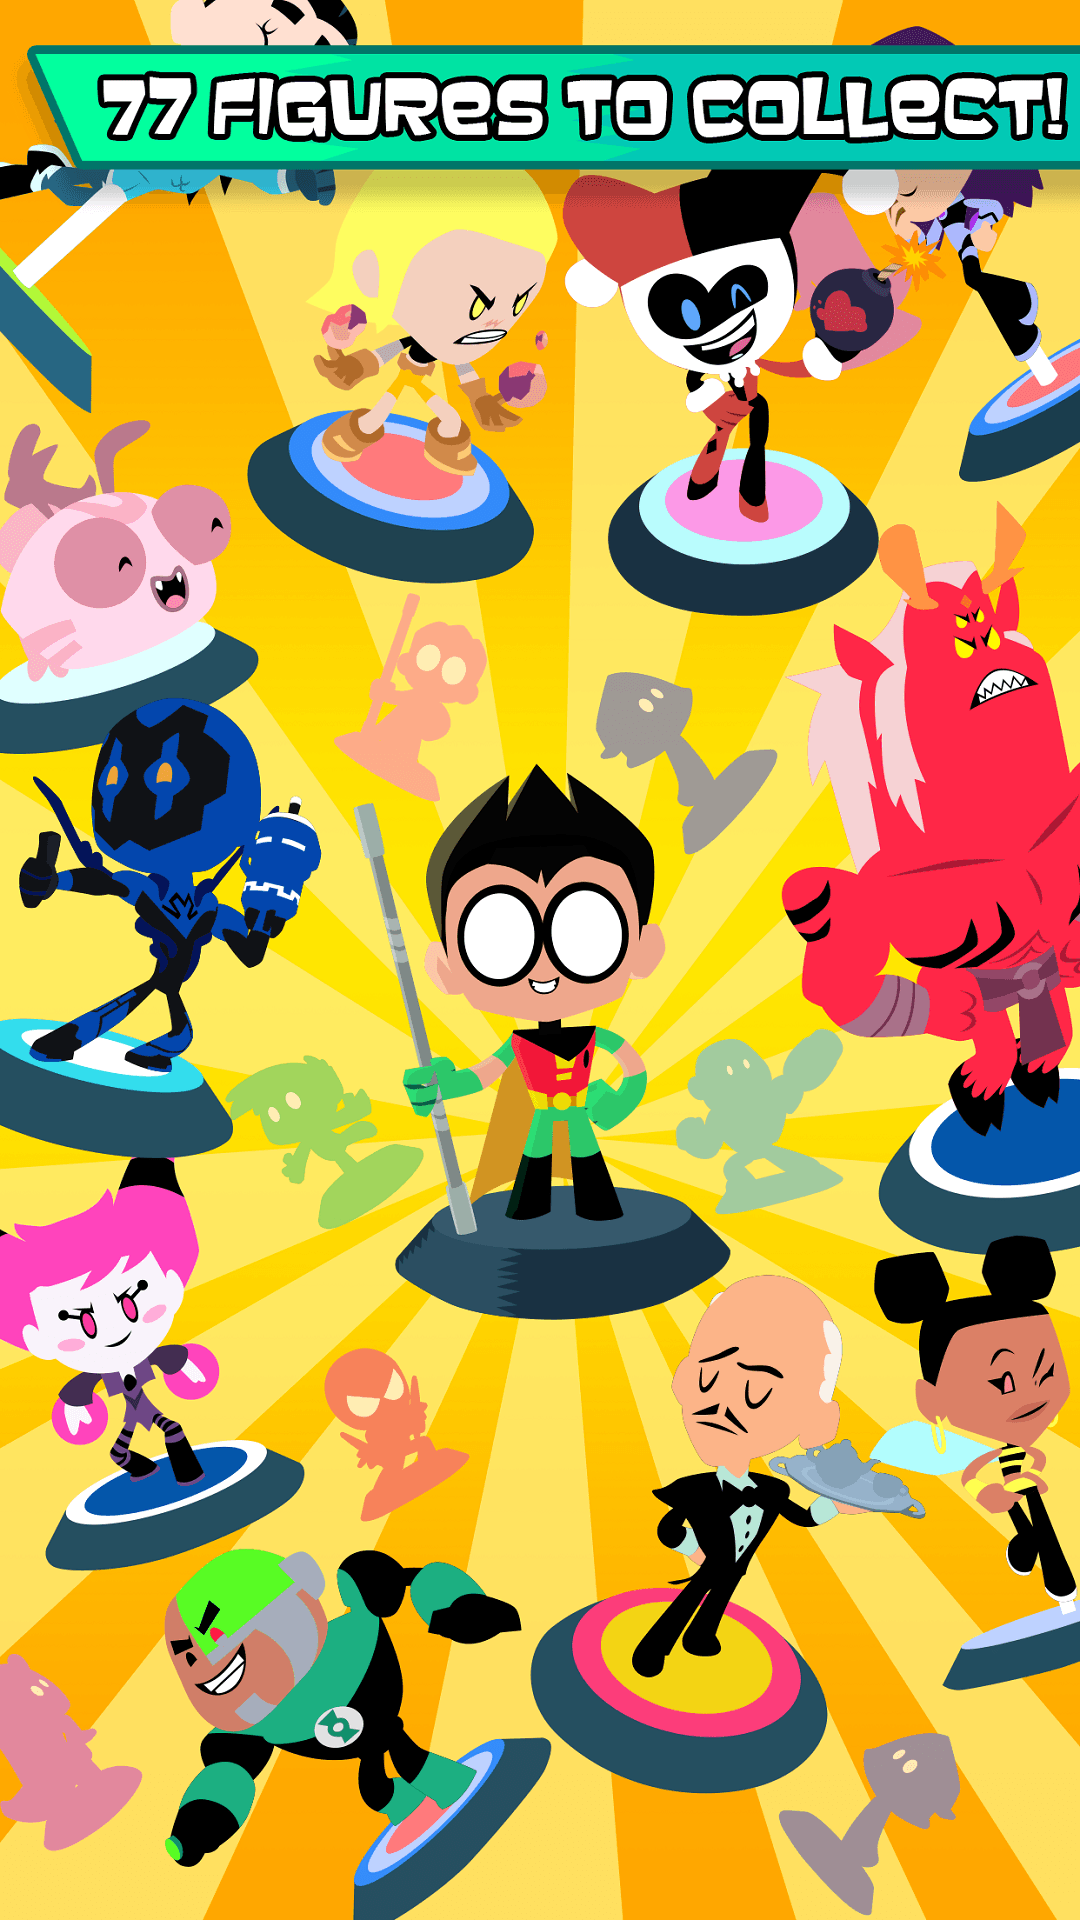 Download Teeny Titans  Teen Titans Go On Pc With Bluestacks-5227